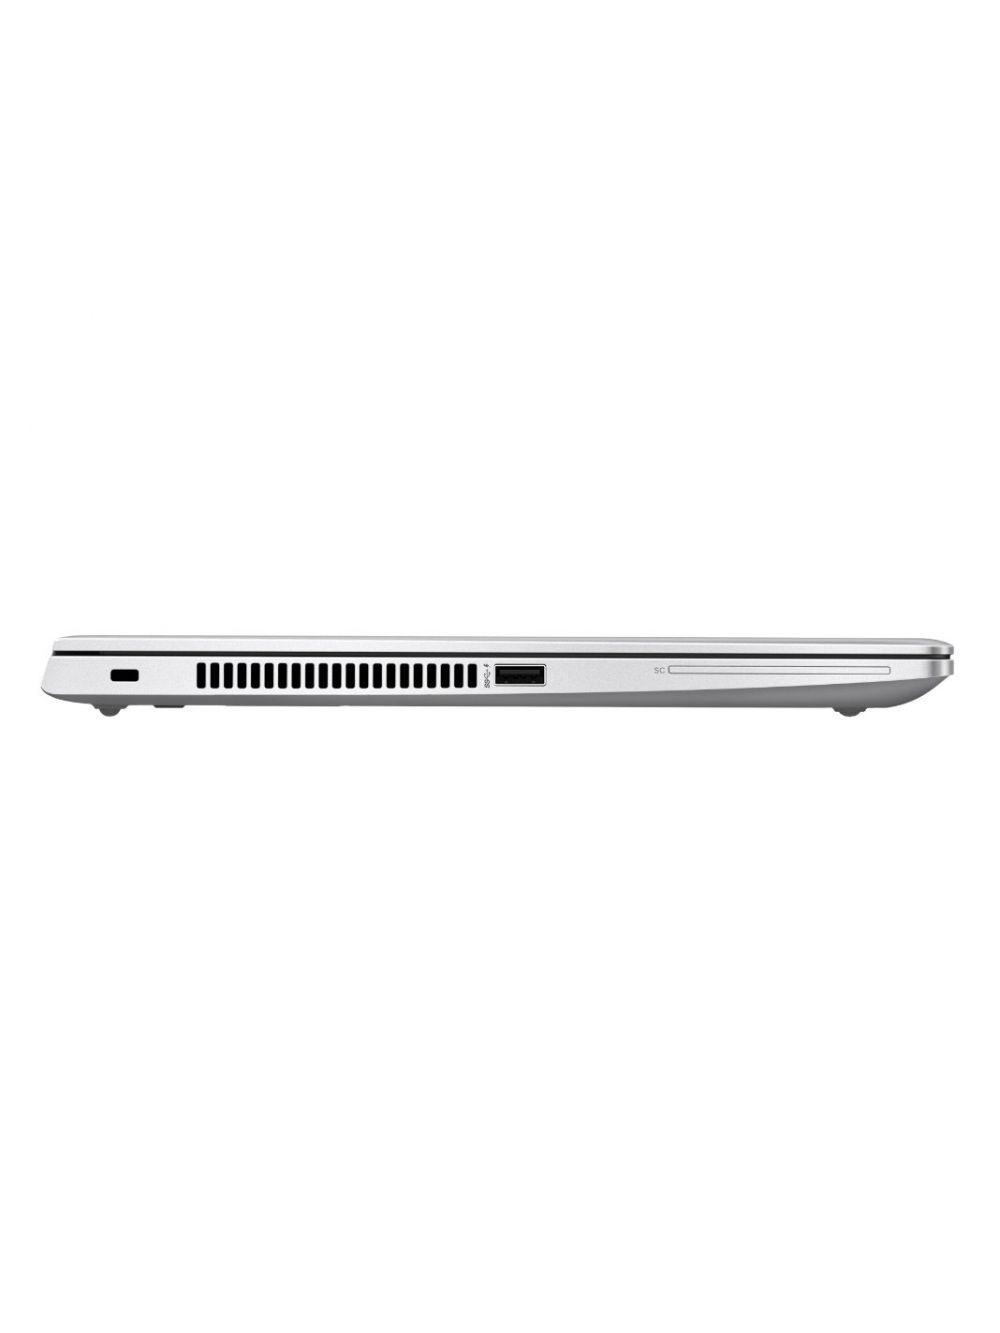 Notebook HP EliteBook 830 G5 Core i7